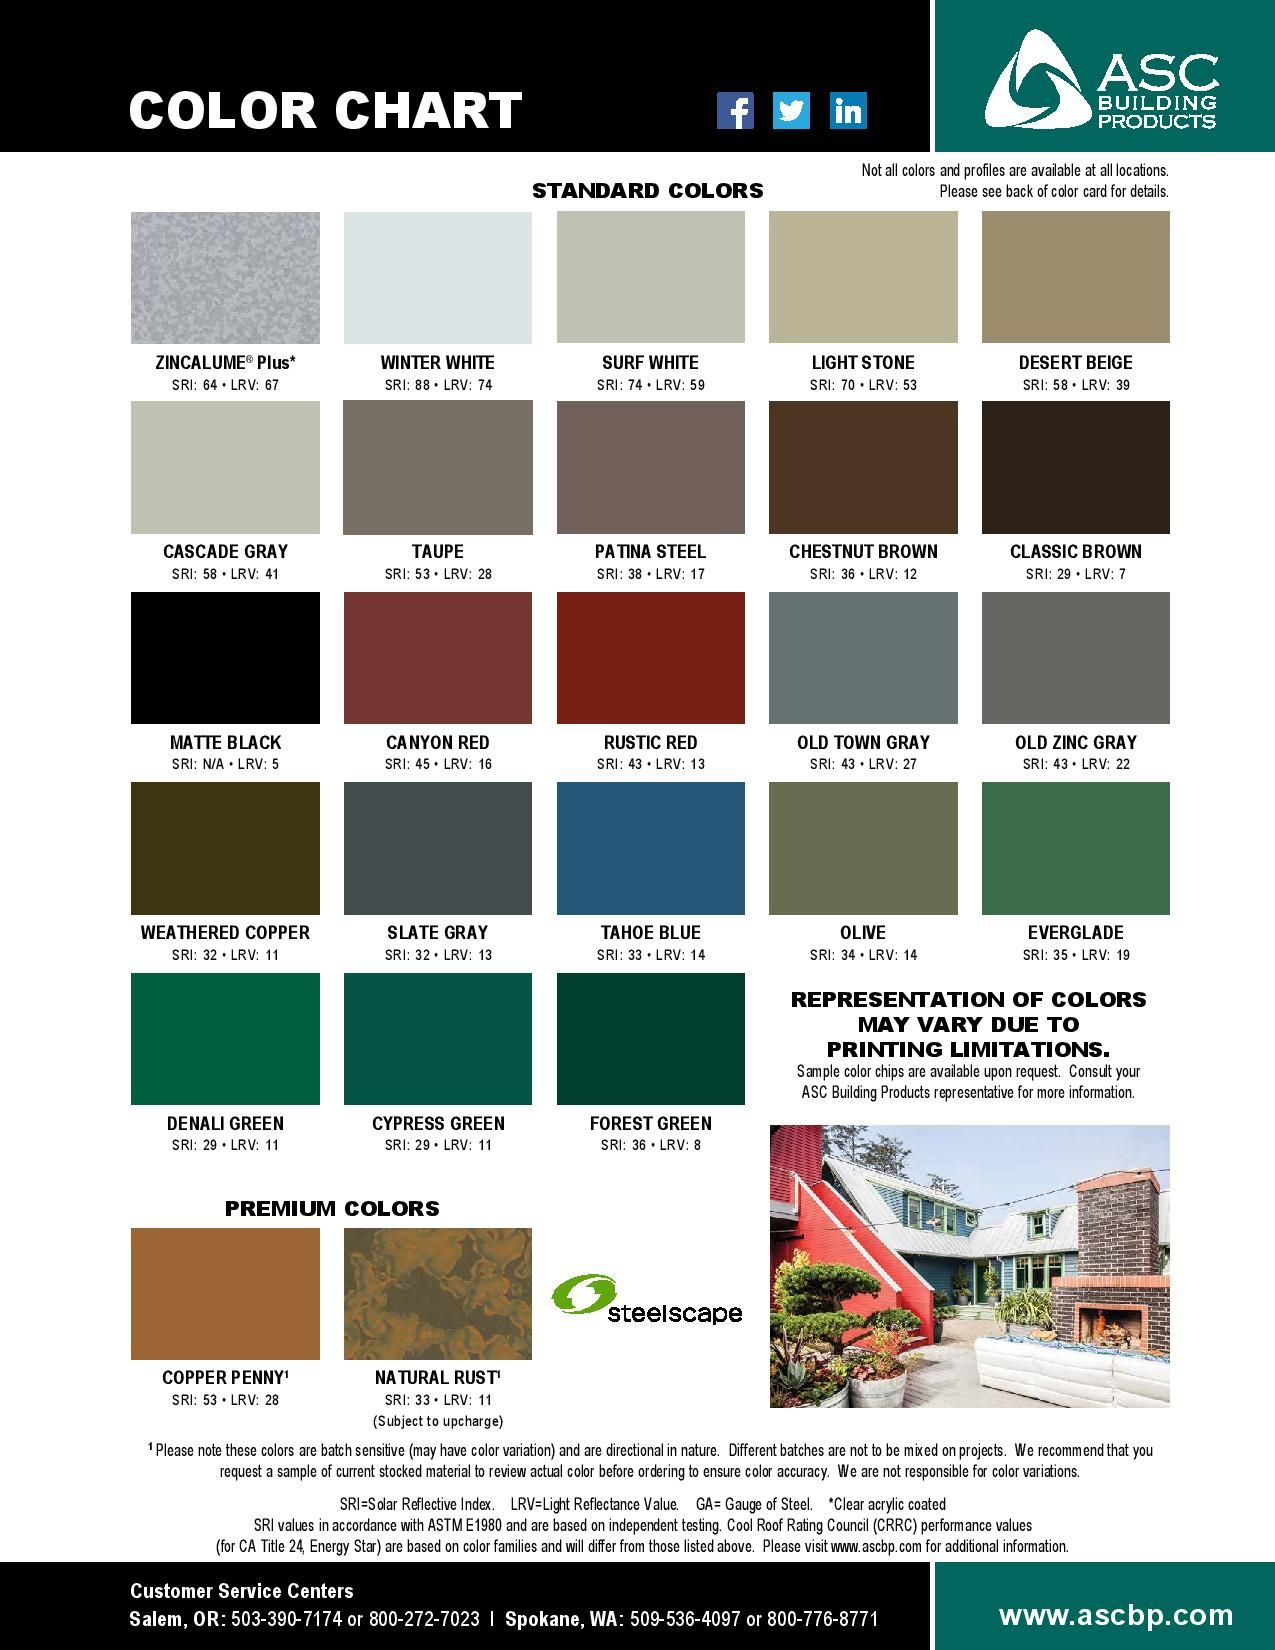 ASC's color chip card for their metal roofing colors.